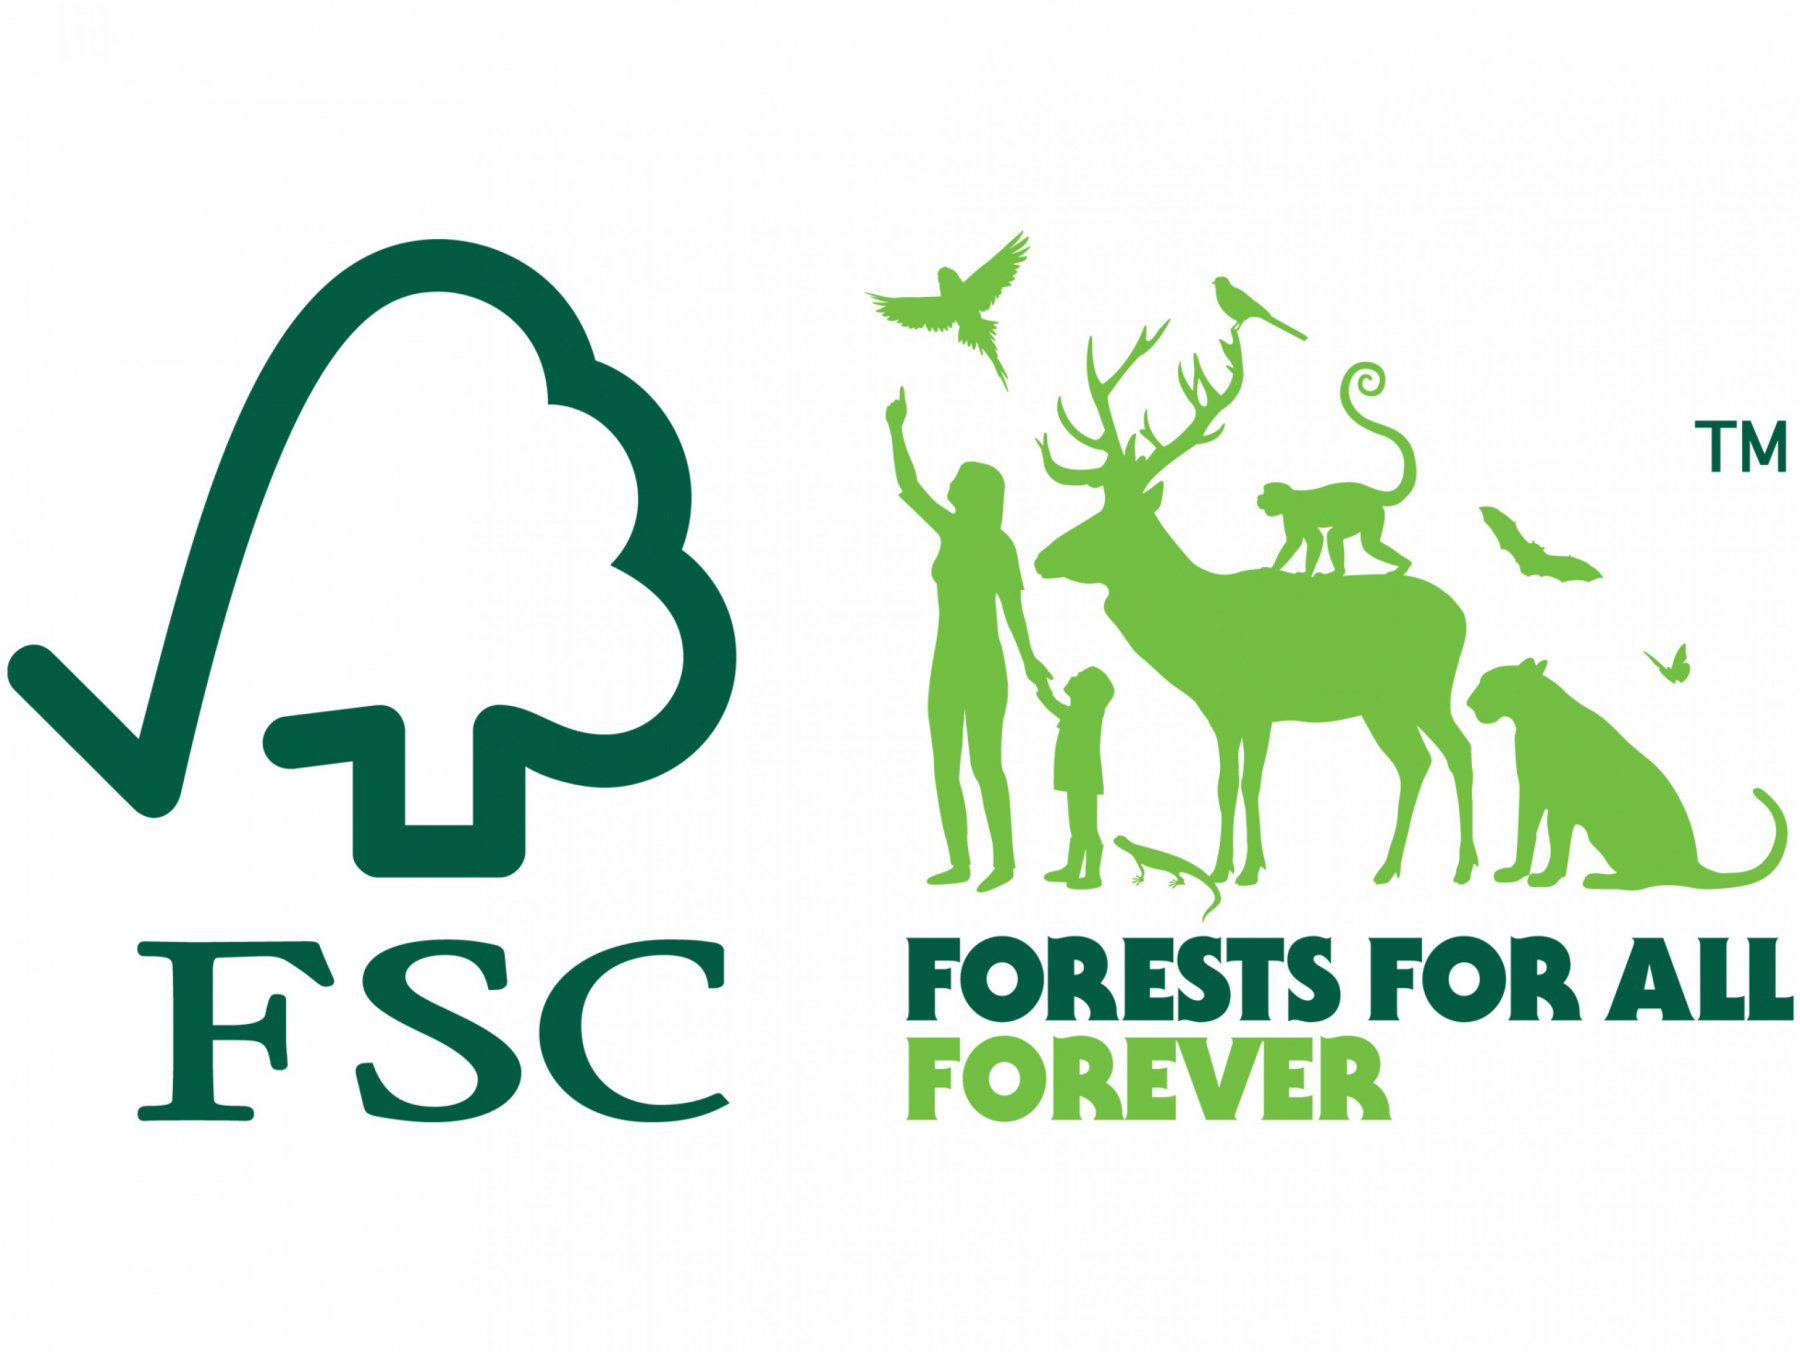 forestry stewardship council school supply packs